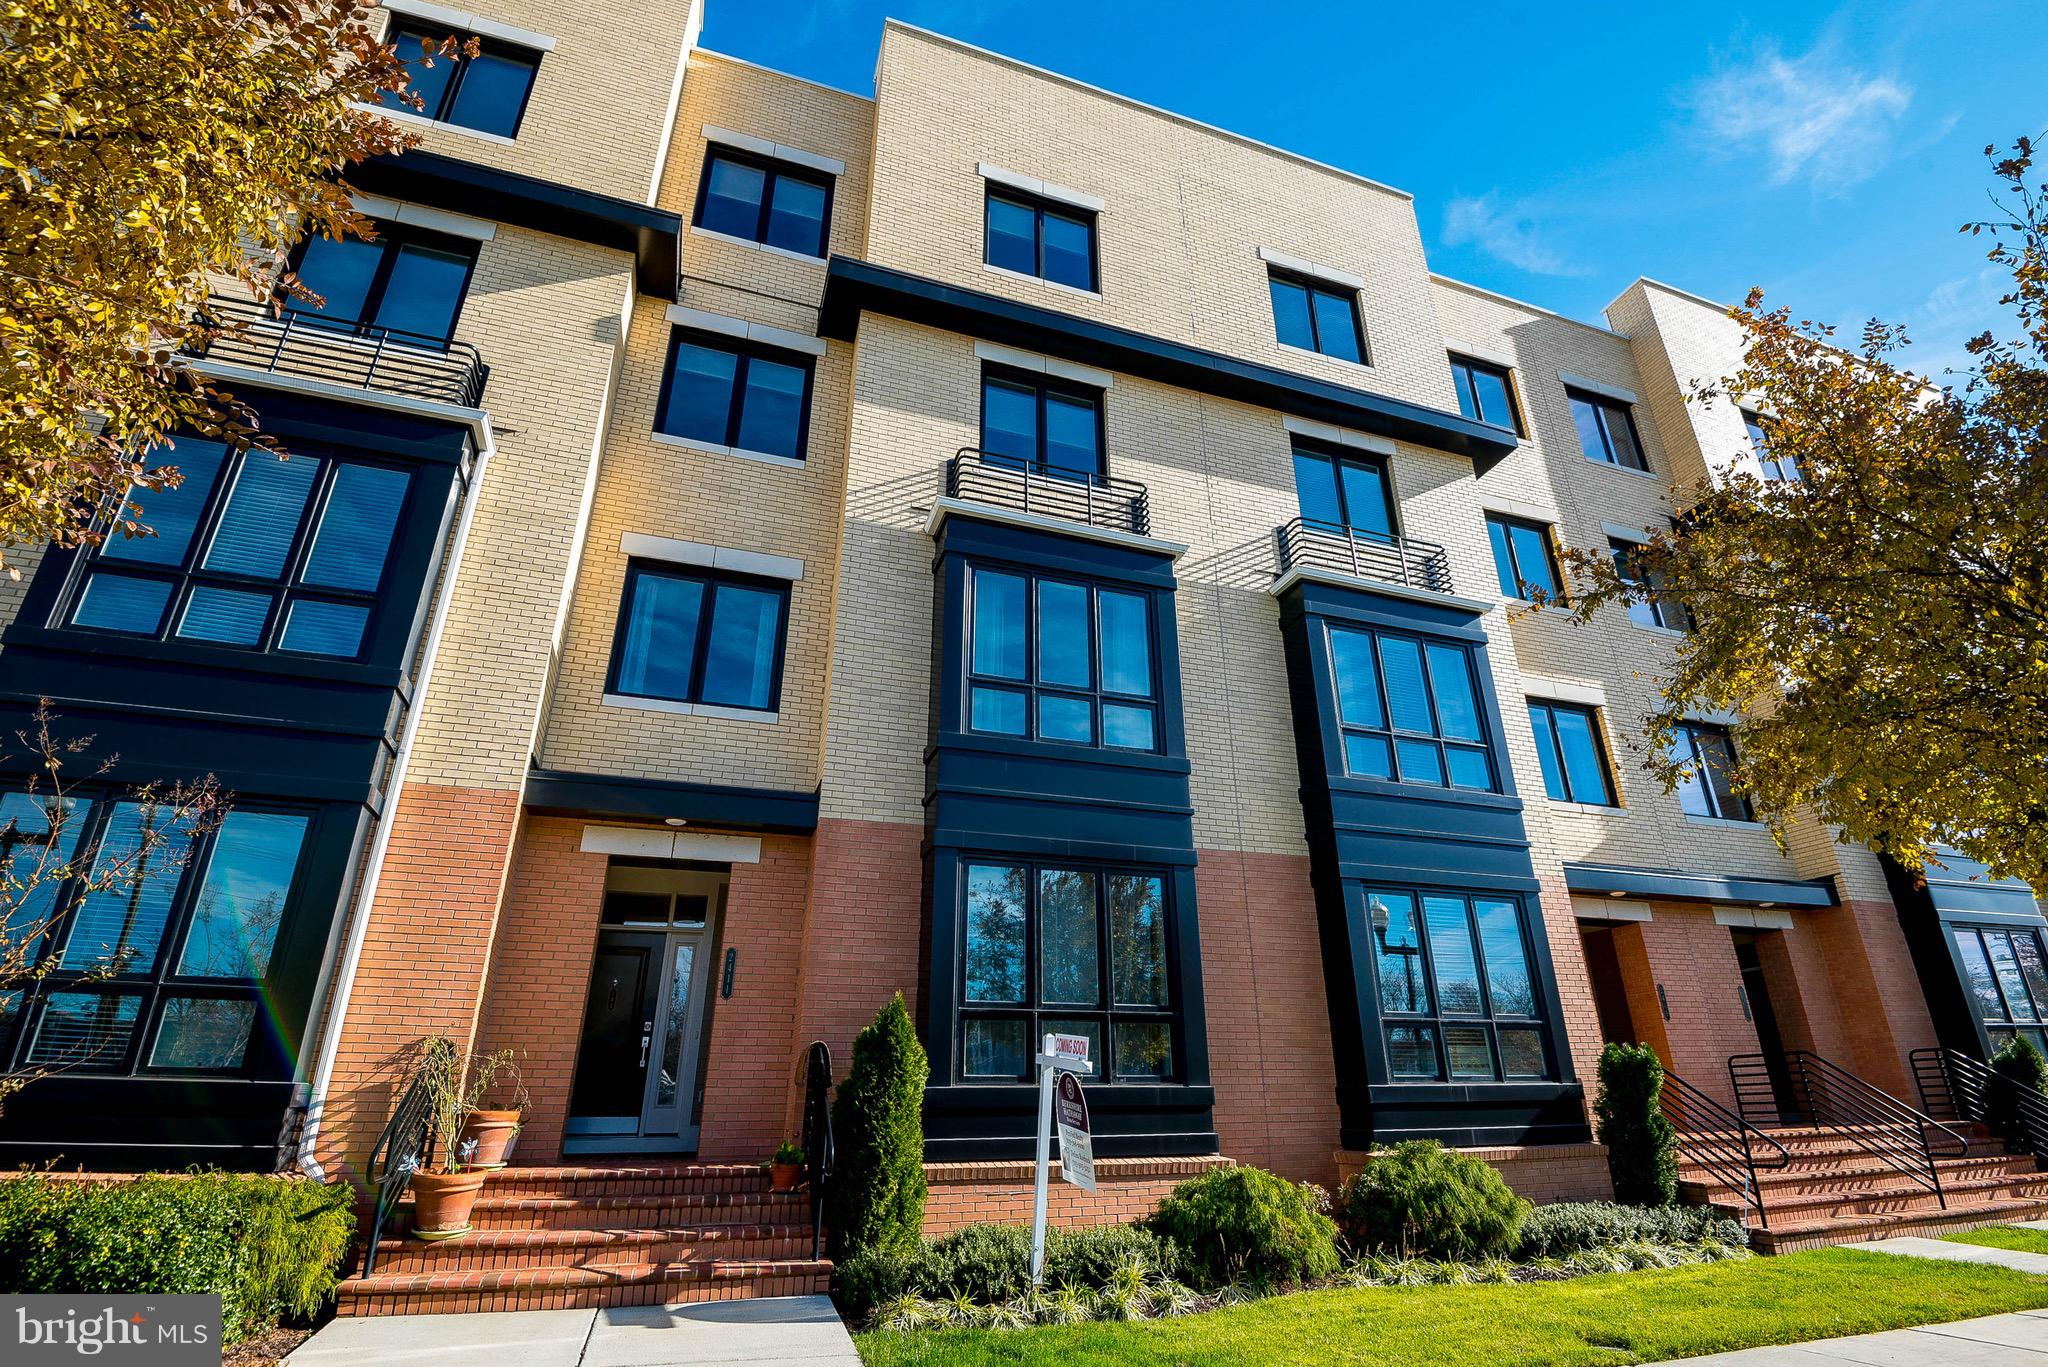 """Extraordinary 2 level modern style townhome/condo in the heart of Potomac Yard community ~ one of the largest model by Pulte - smart home wired- surveillance, heat/cool/lock & unlock & smart garage  with electric car charging station and custom overhead heavy duty storage racks - Abundant natural light, gourmet kitchen with upgraded cabinets & granite counters and glistening hardwood on main level and carpet on upper.  Spacious MBR with dual walk-in closet and spa bath & Roman shower with dual heads, double vanities, premium tile. upper laundry, floor to ceiling linen closet in masterbedroom & AMPLE STORAGE THROUGHOUT UNIT ~LOCATION, LOCATION, LOCATION!! - Metrobus Express Stop across the street,  10 blocks to Metro (2 stops to Crystal City and new metro at East Glebe has been approved!), 5 min from Old Town,  Walk to Potomac Yard shopping (Target, Michaels, restaurants, Petsmart, Staples, Giant, Kaiser Permanente),  quaint shops and pubs @Del Ray,  minutes to DCA airport and Pentagon City Mall. Bike path across street adds even more access to entire DC/NOVA/MD area (3 mi to Crystal City, future HQ for Amazon and """"VT Innovation Campus)."""